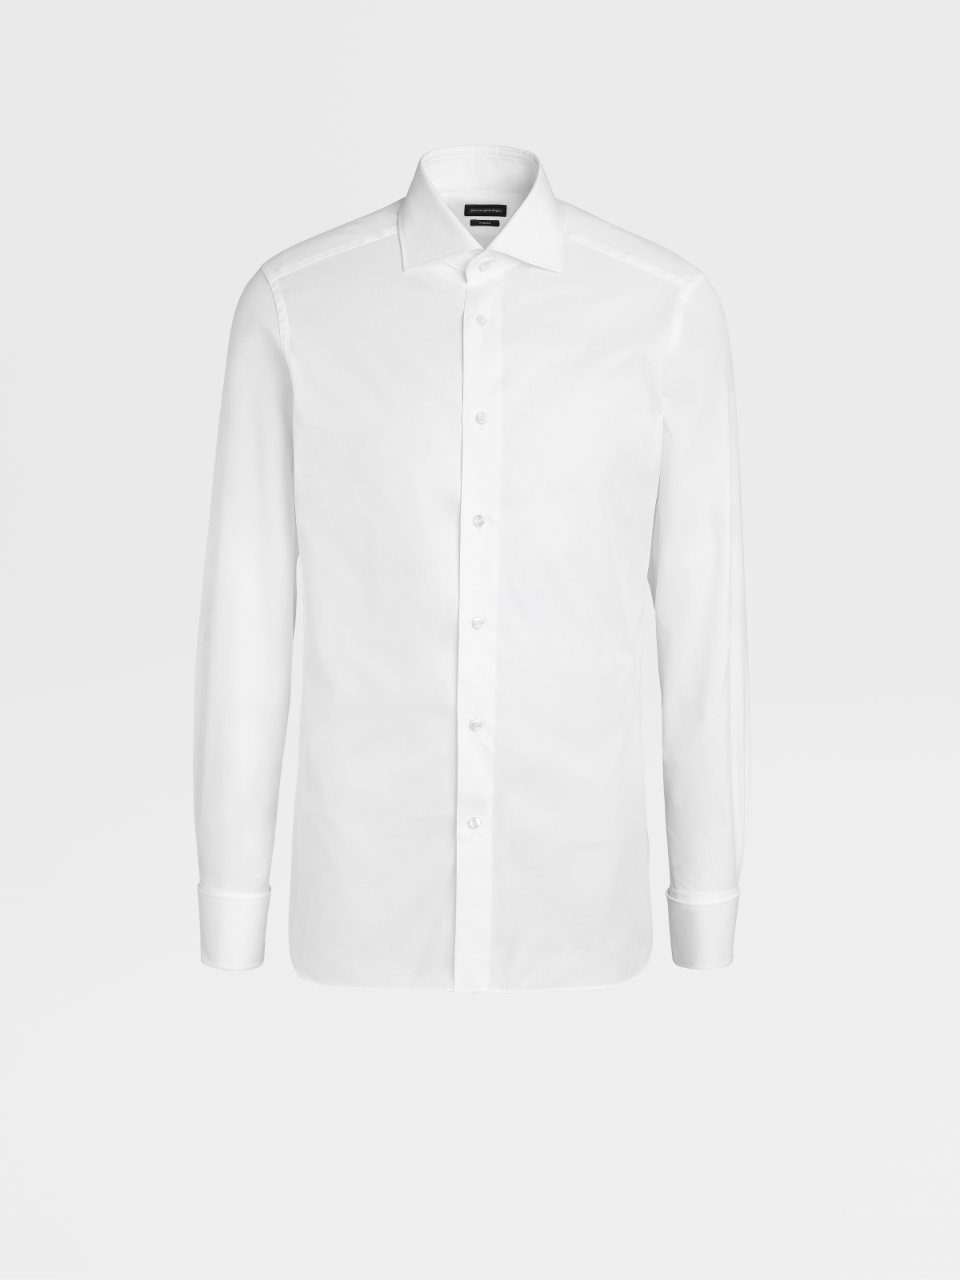 White Trofeo Cotton Shirt With French Cuffs